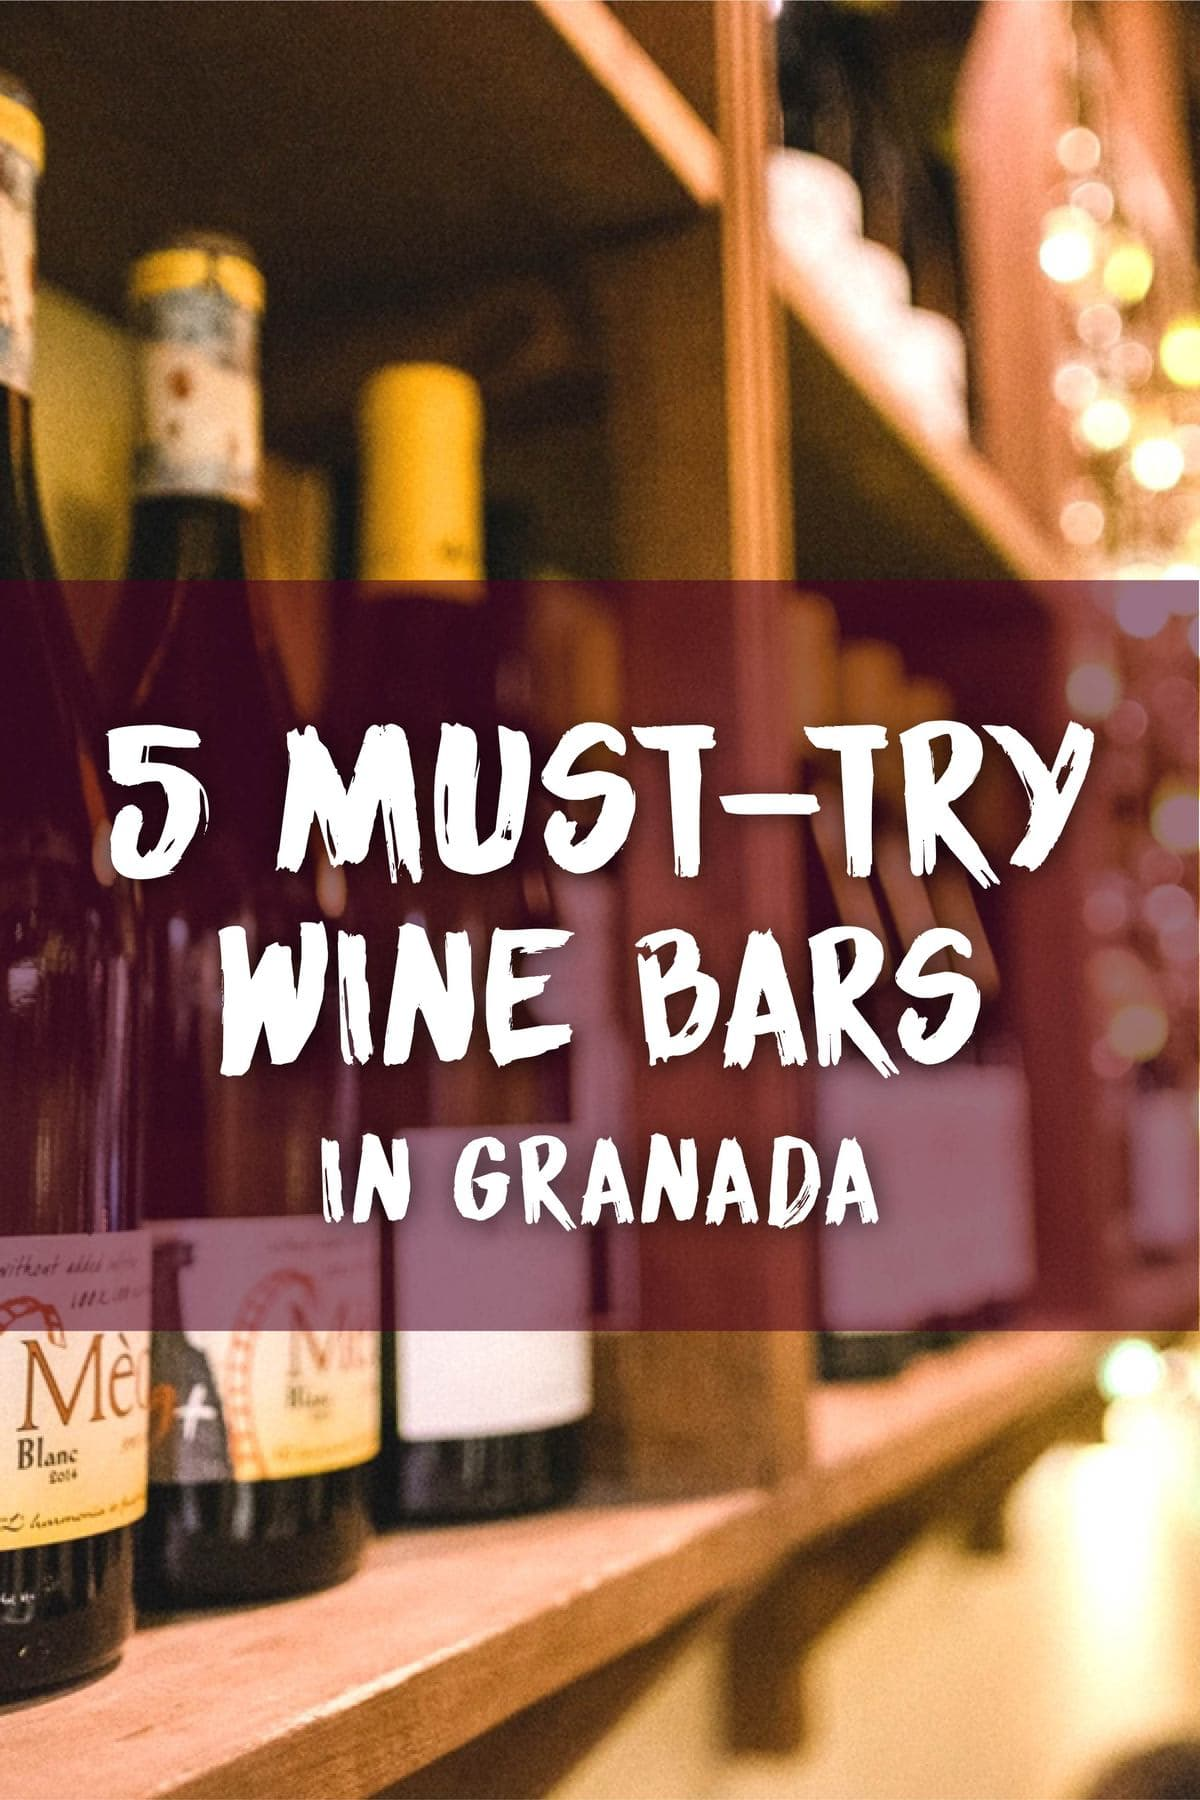 Itching to try a selection of delicious Andalucian wines? Step into one of our favorite wine bars in Granada and enjoy some of the best vino in town!